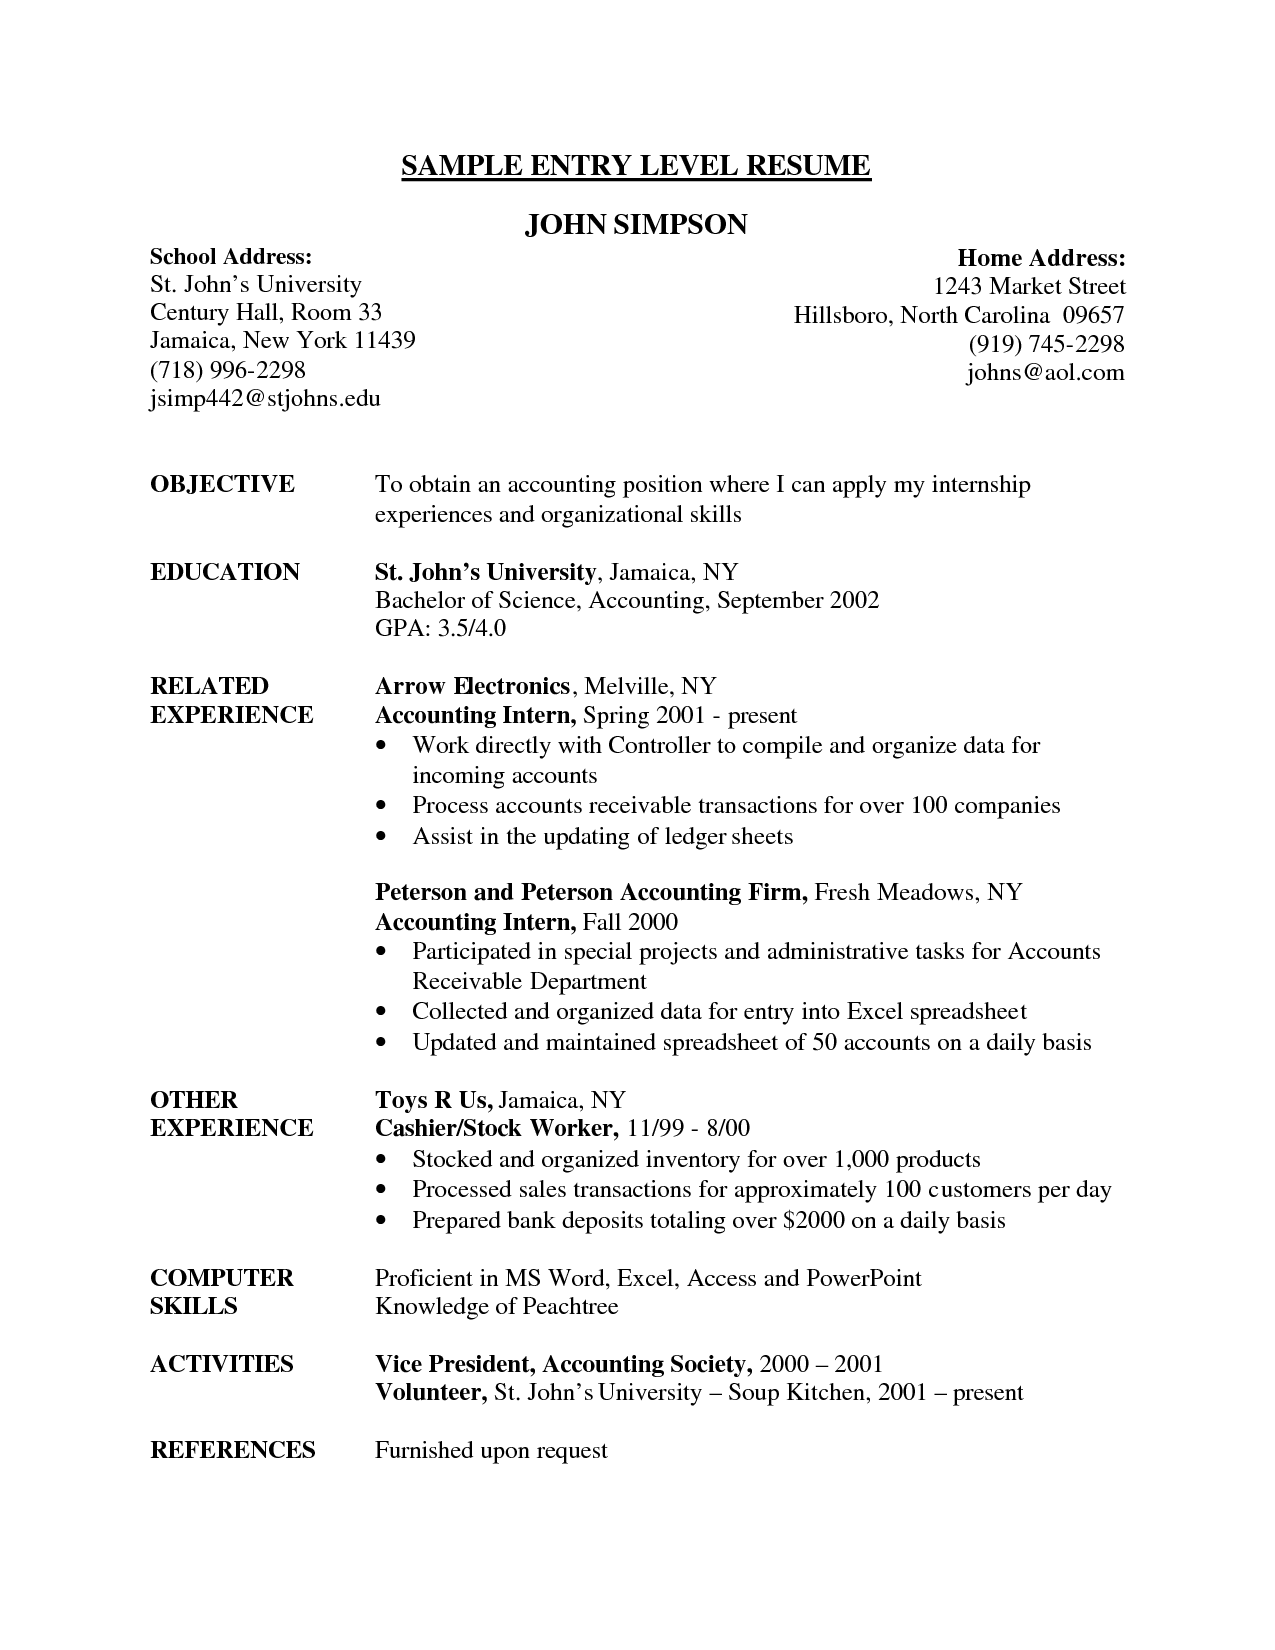 Pin by jobresume on Resume Career termplate free | Pinterest | Entry ...